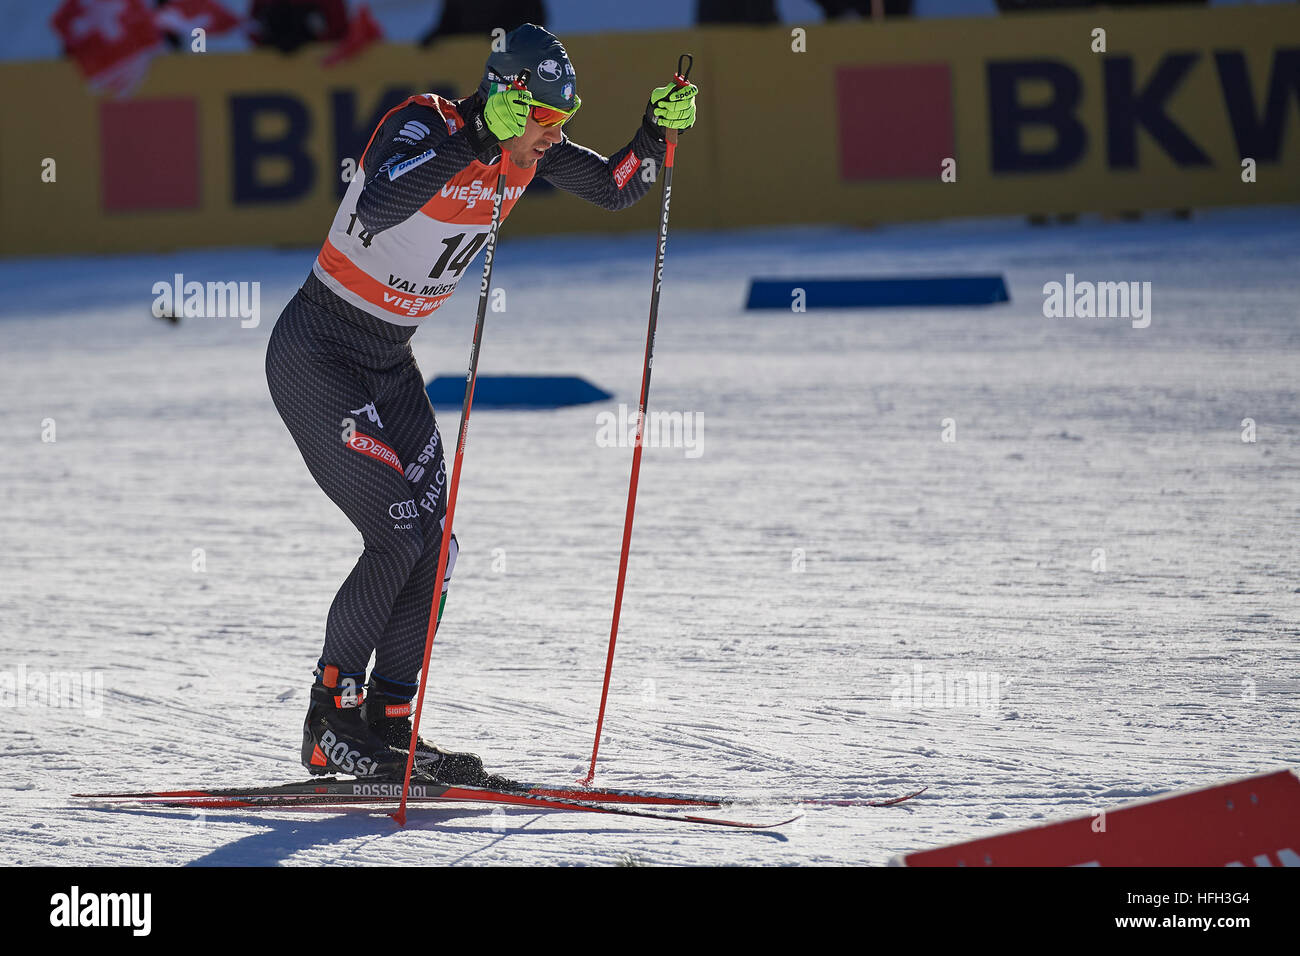 Val Müstair, Switzerland, 31st December 2016. Federico Pellegrino during the Men' Sprint competition at the - Stock Image